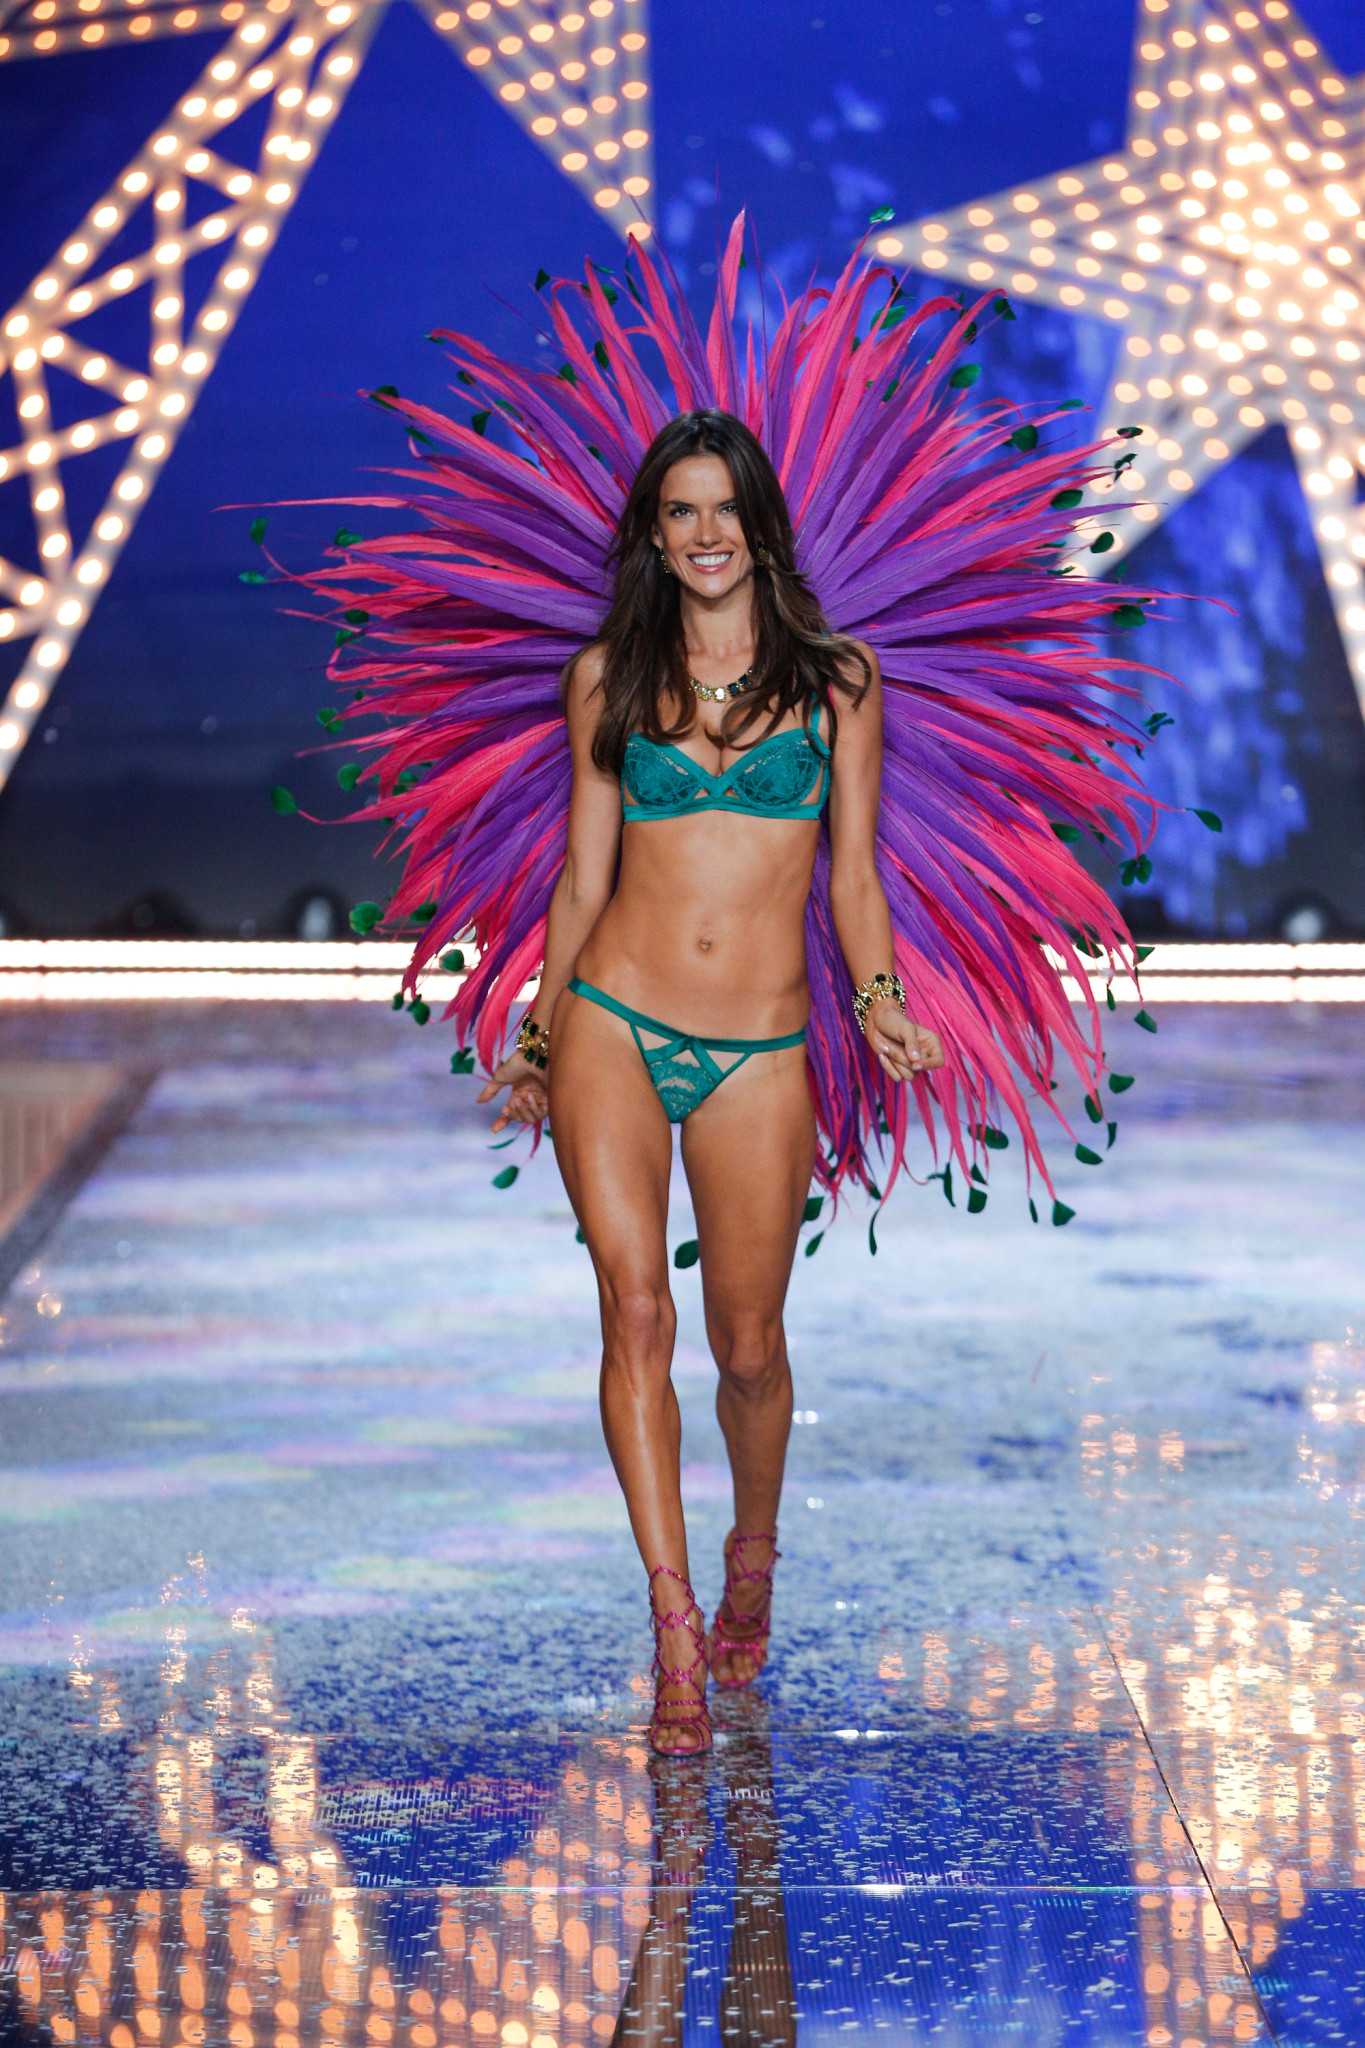 Alessandra Ambrosio walks the runway at the 2015 Victoria's Secret Fashion Show in New York City on November 10th, 2015